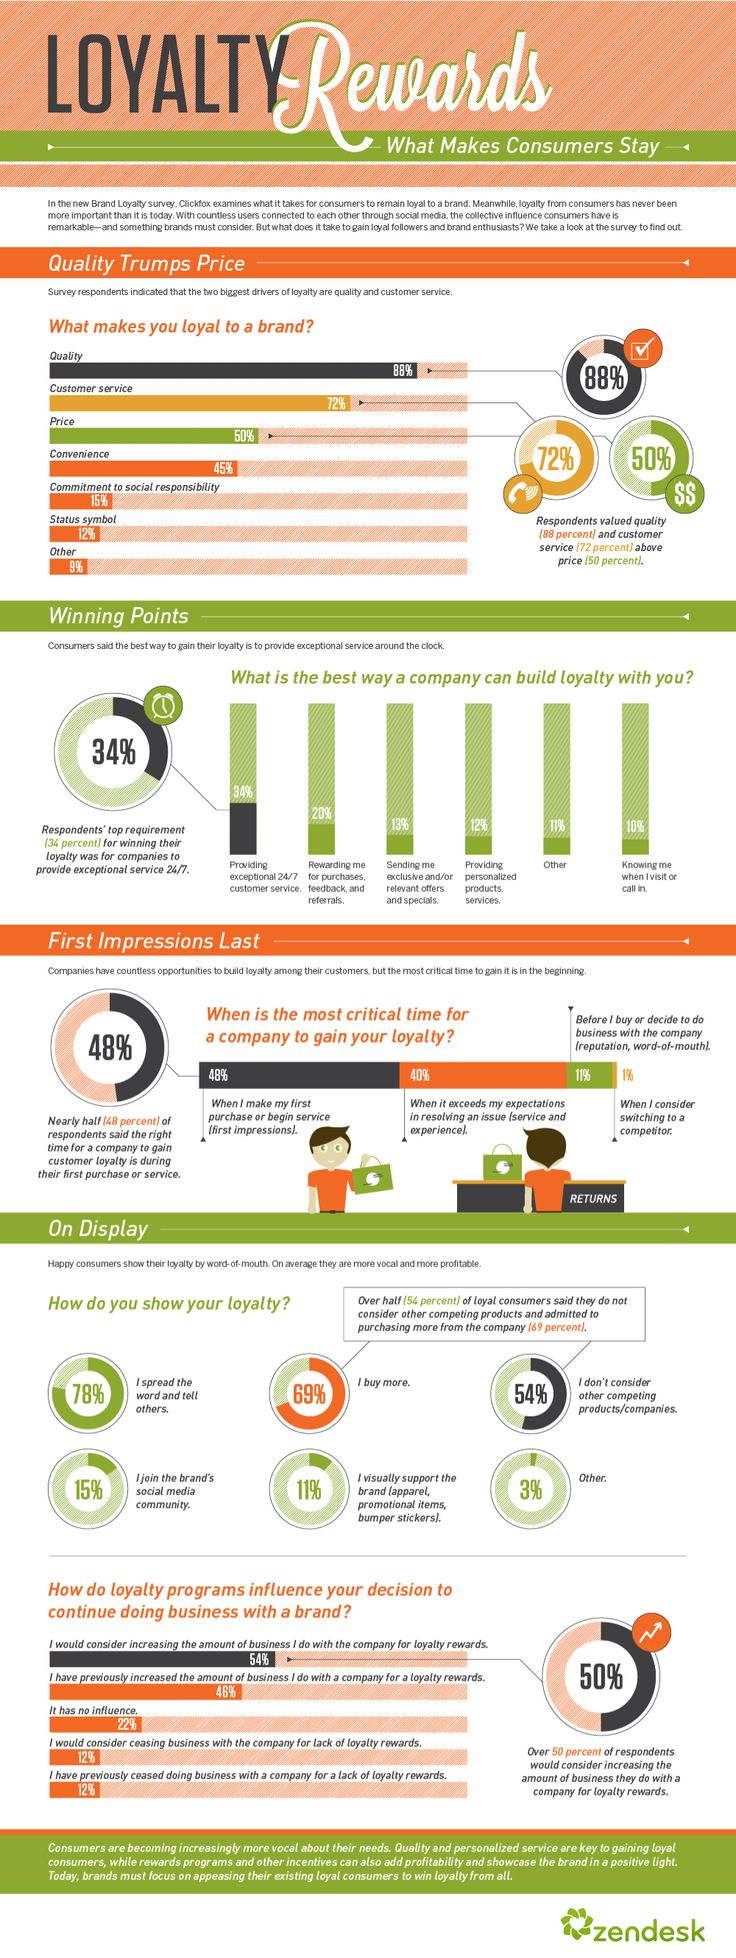 What makes customers stay loyal? #infographic from Zendesk